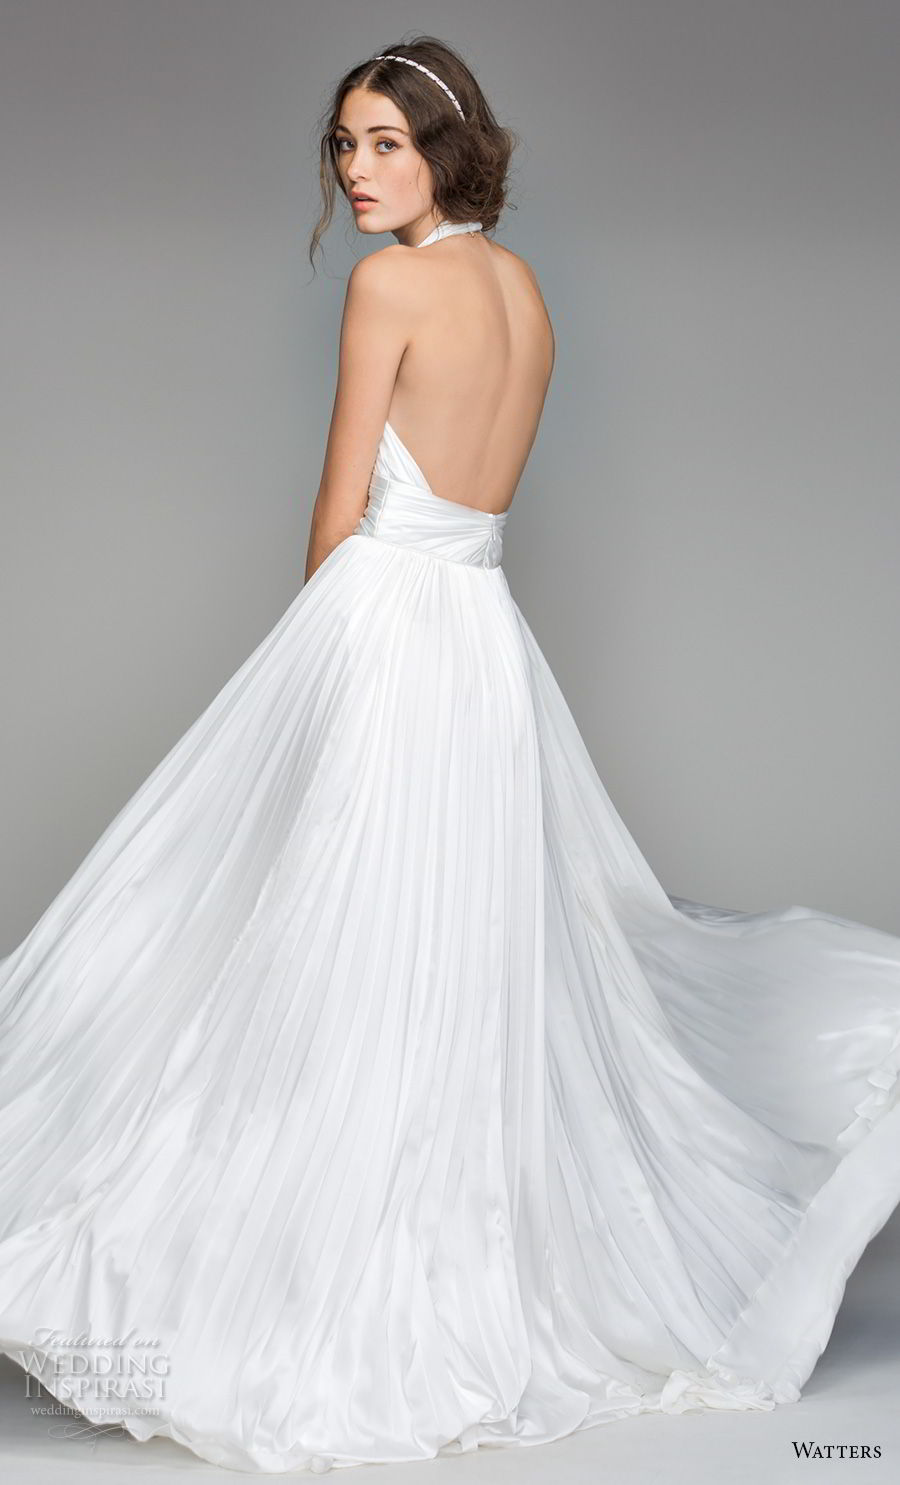 willow by watters spring 2018 sleeveless deep v neck ruched bodice romantic sexy soft a  line wedding dress open back sweep train (7) bv